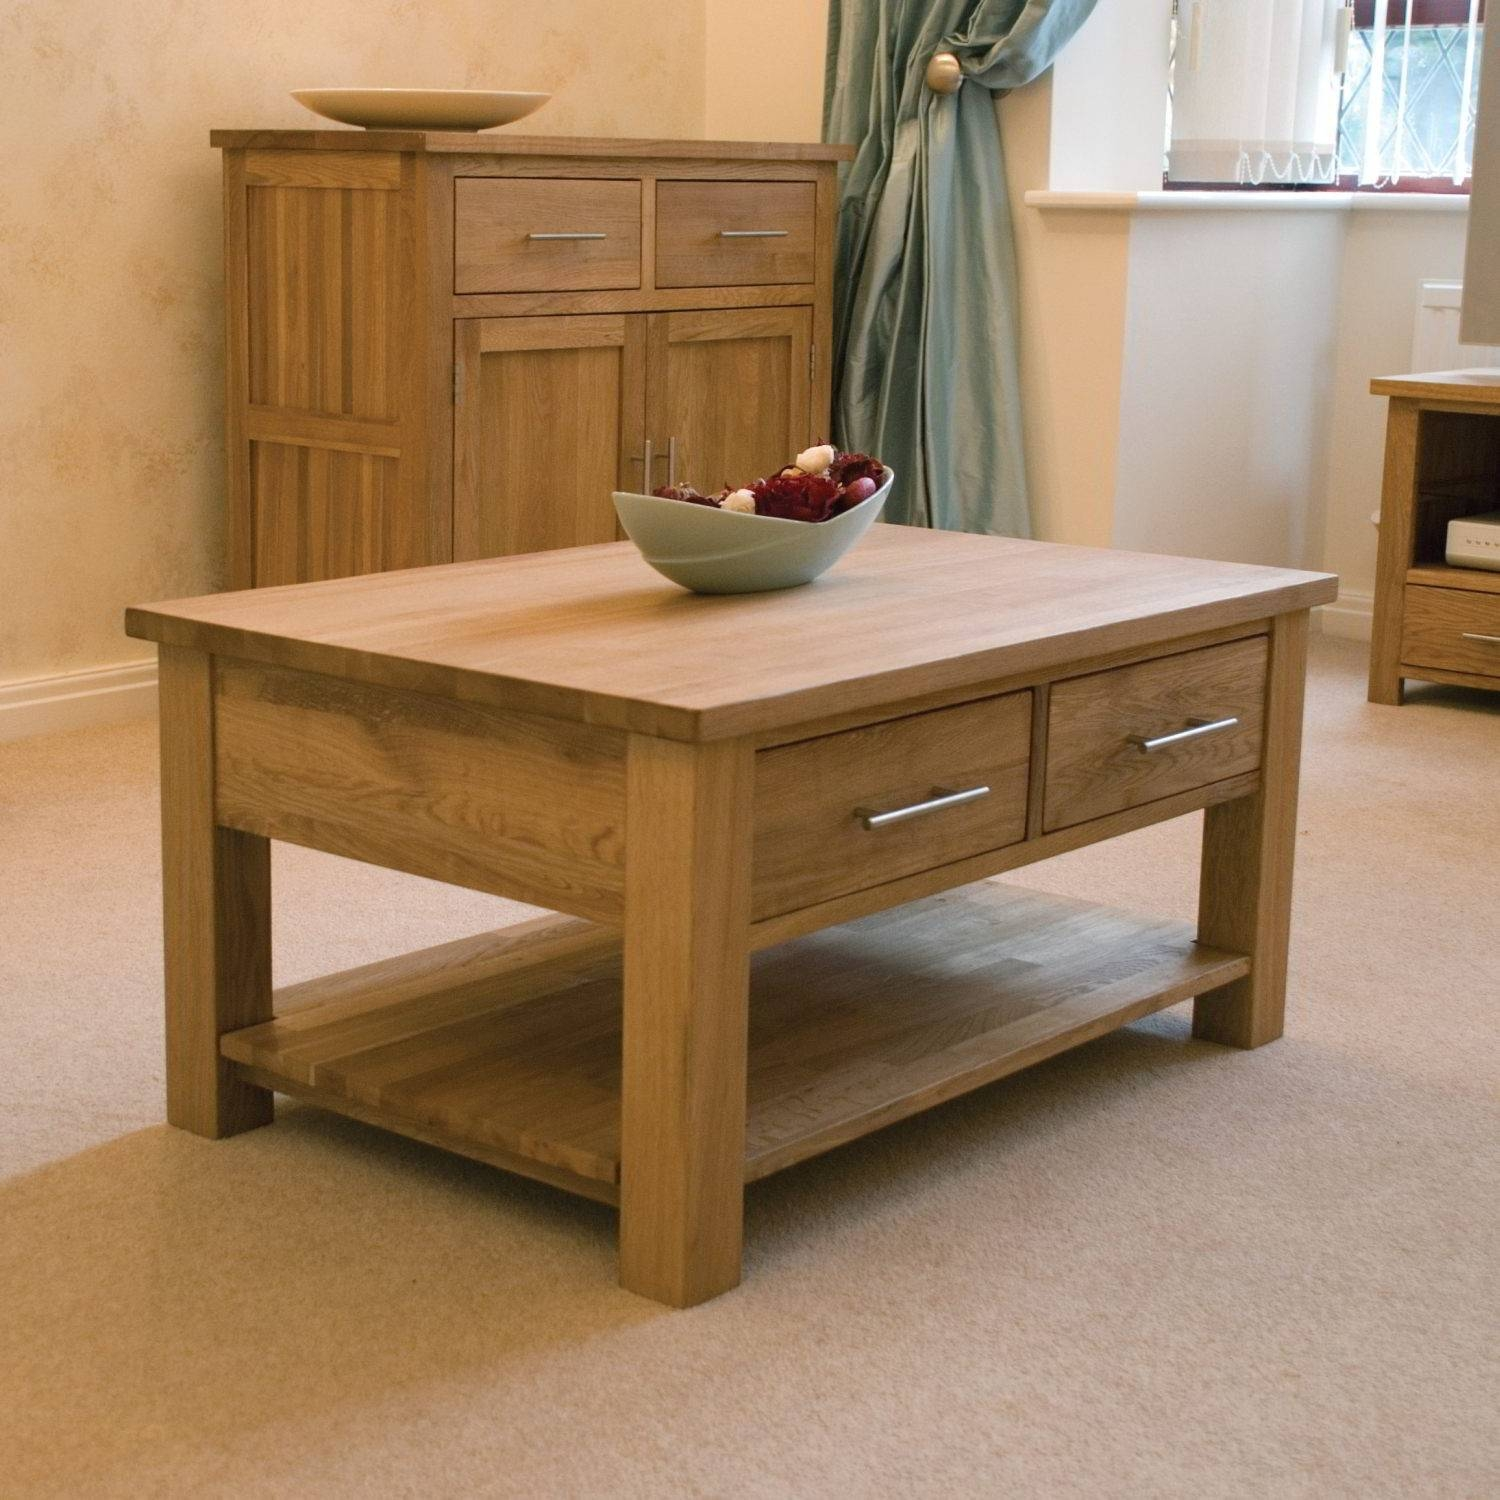 Solid Oak Coffee Table And End Tables | Coffee Tables Decoration throughout Oak Coffee Tables With Shelf (Image 26 of 30)